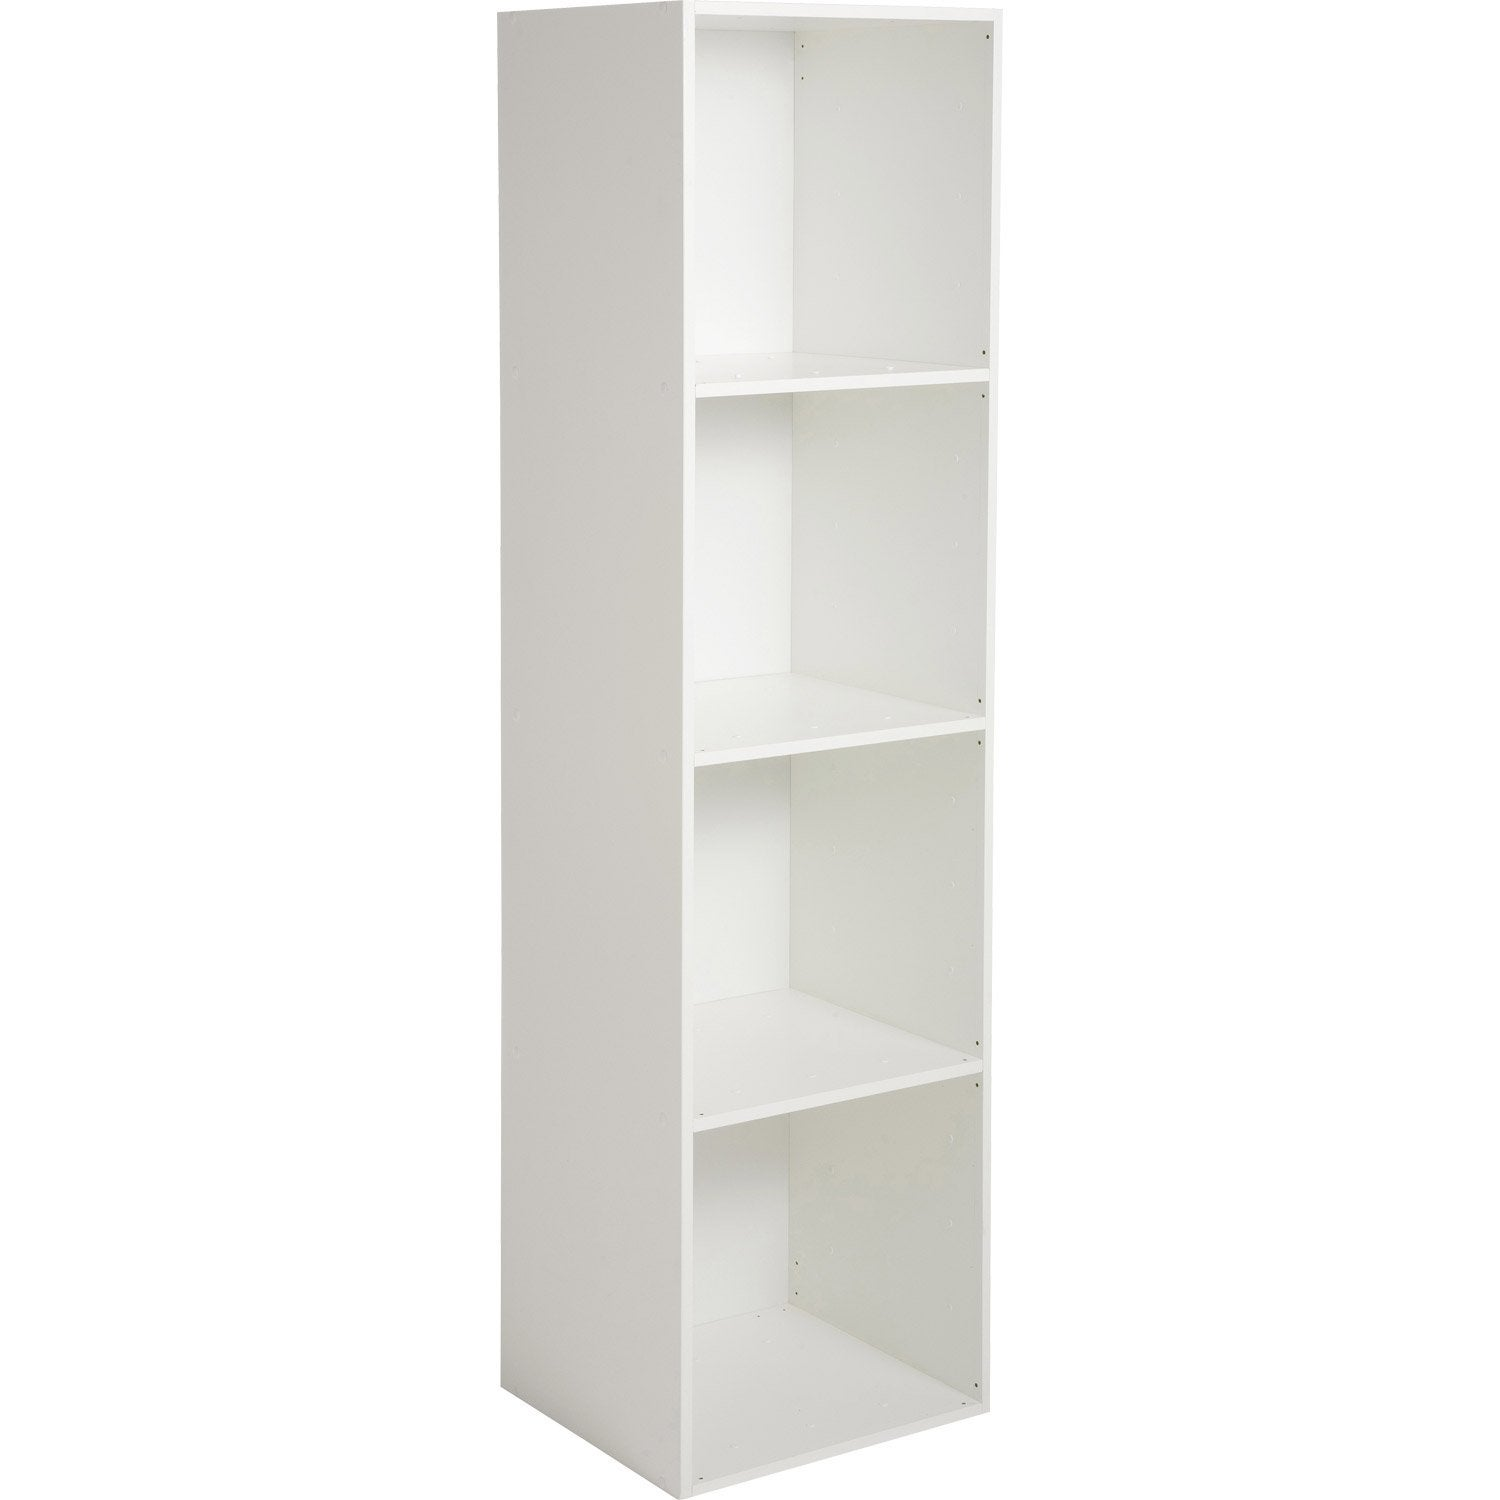 Etag re 4 cases multikaz blanc x x - Armoire de rangement castorama ...